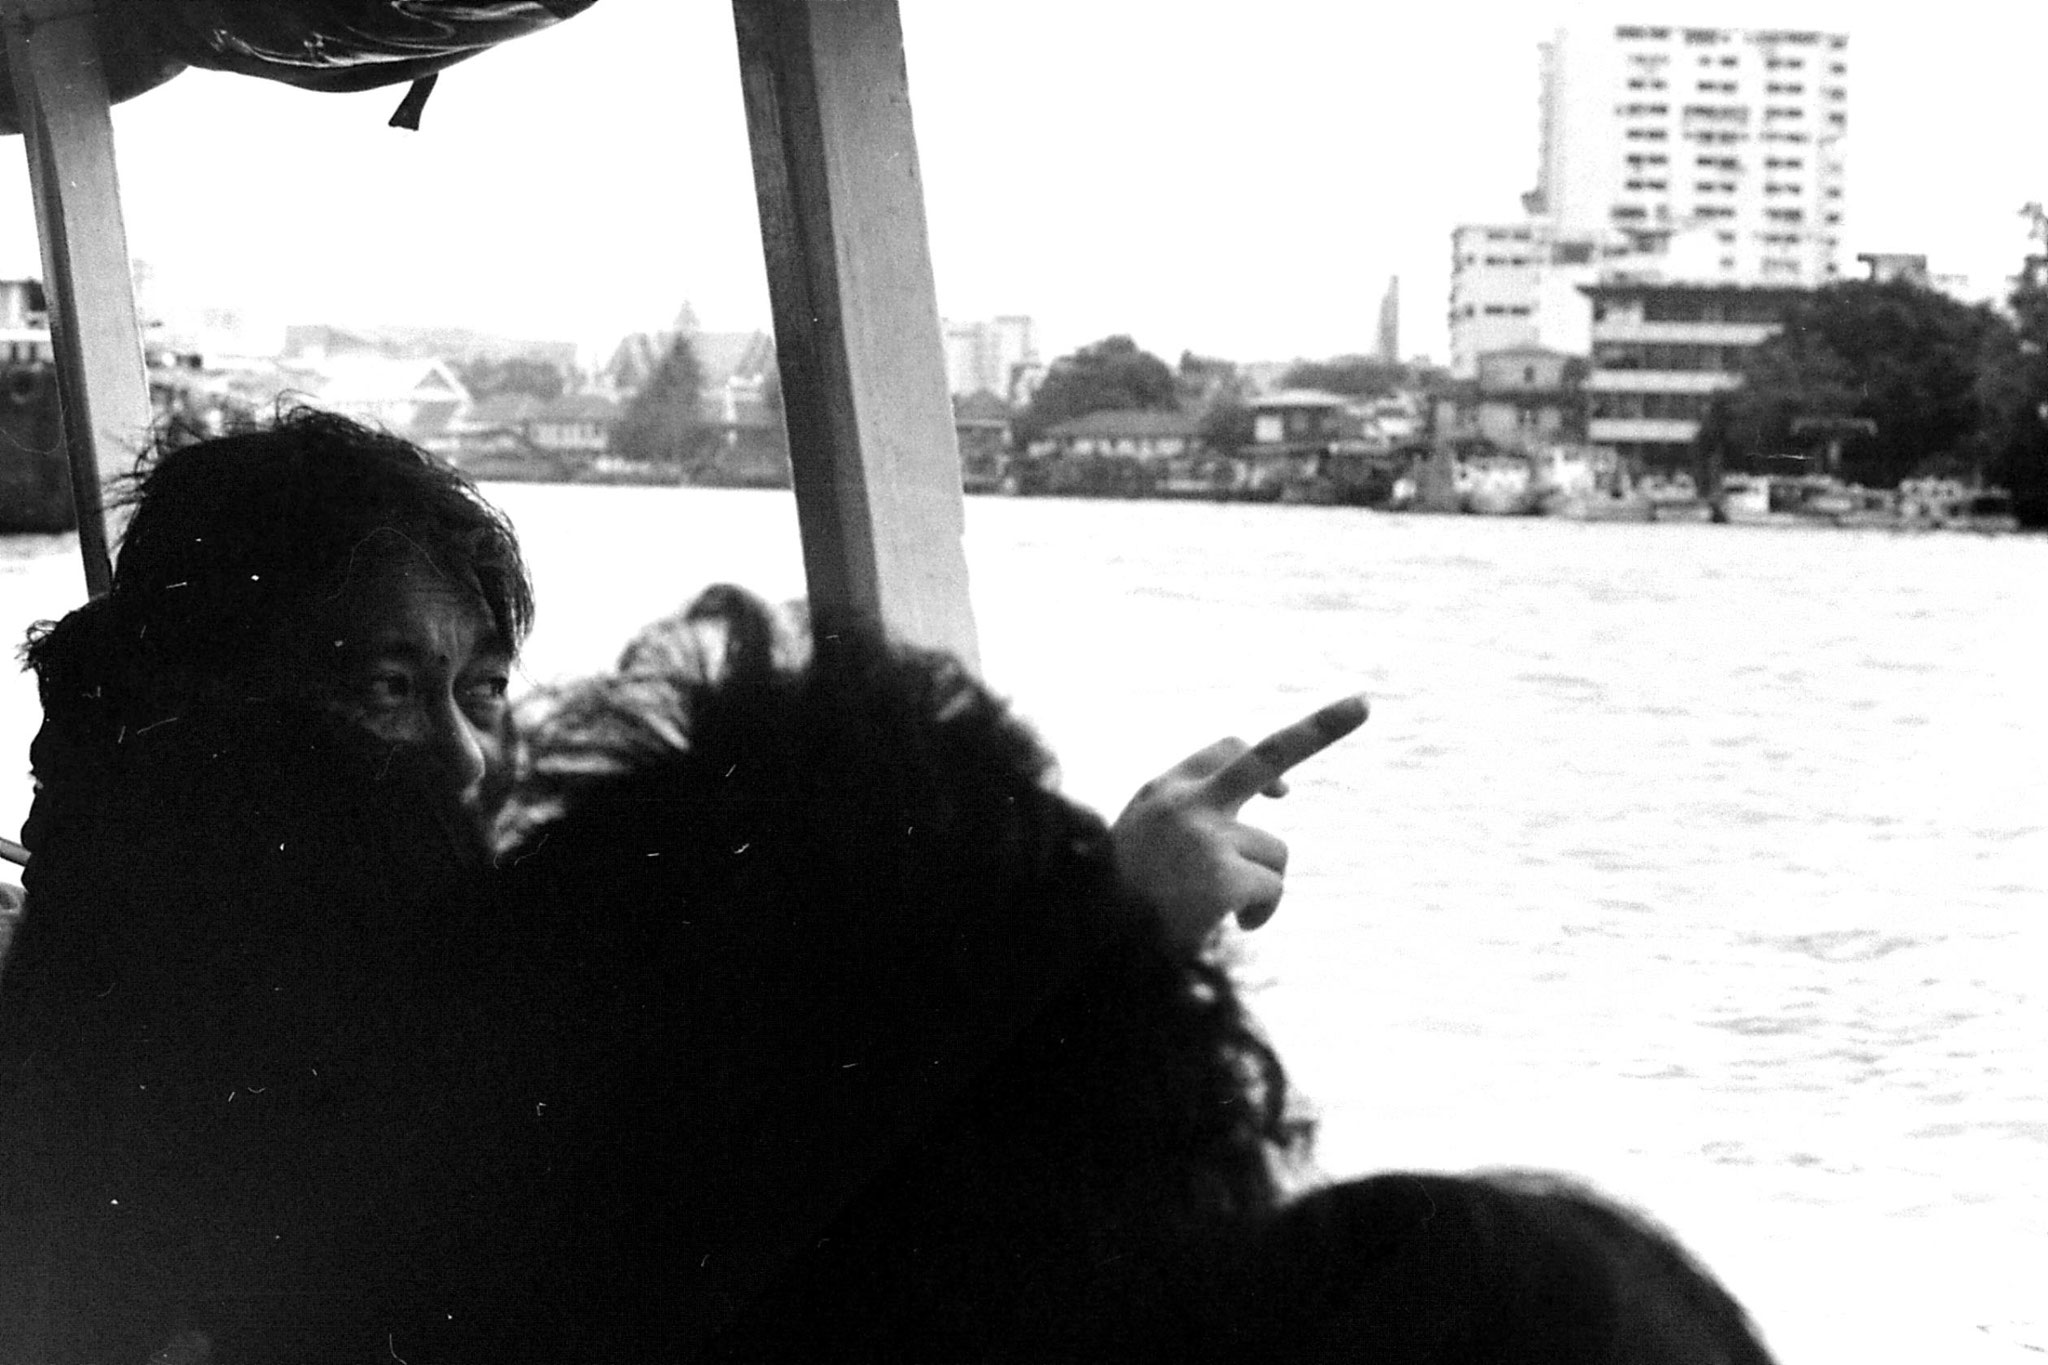 17/6/1990: 15: Bangkok, on the river